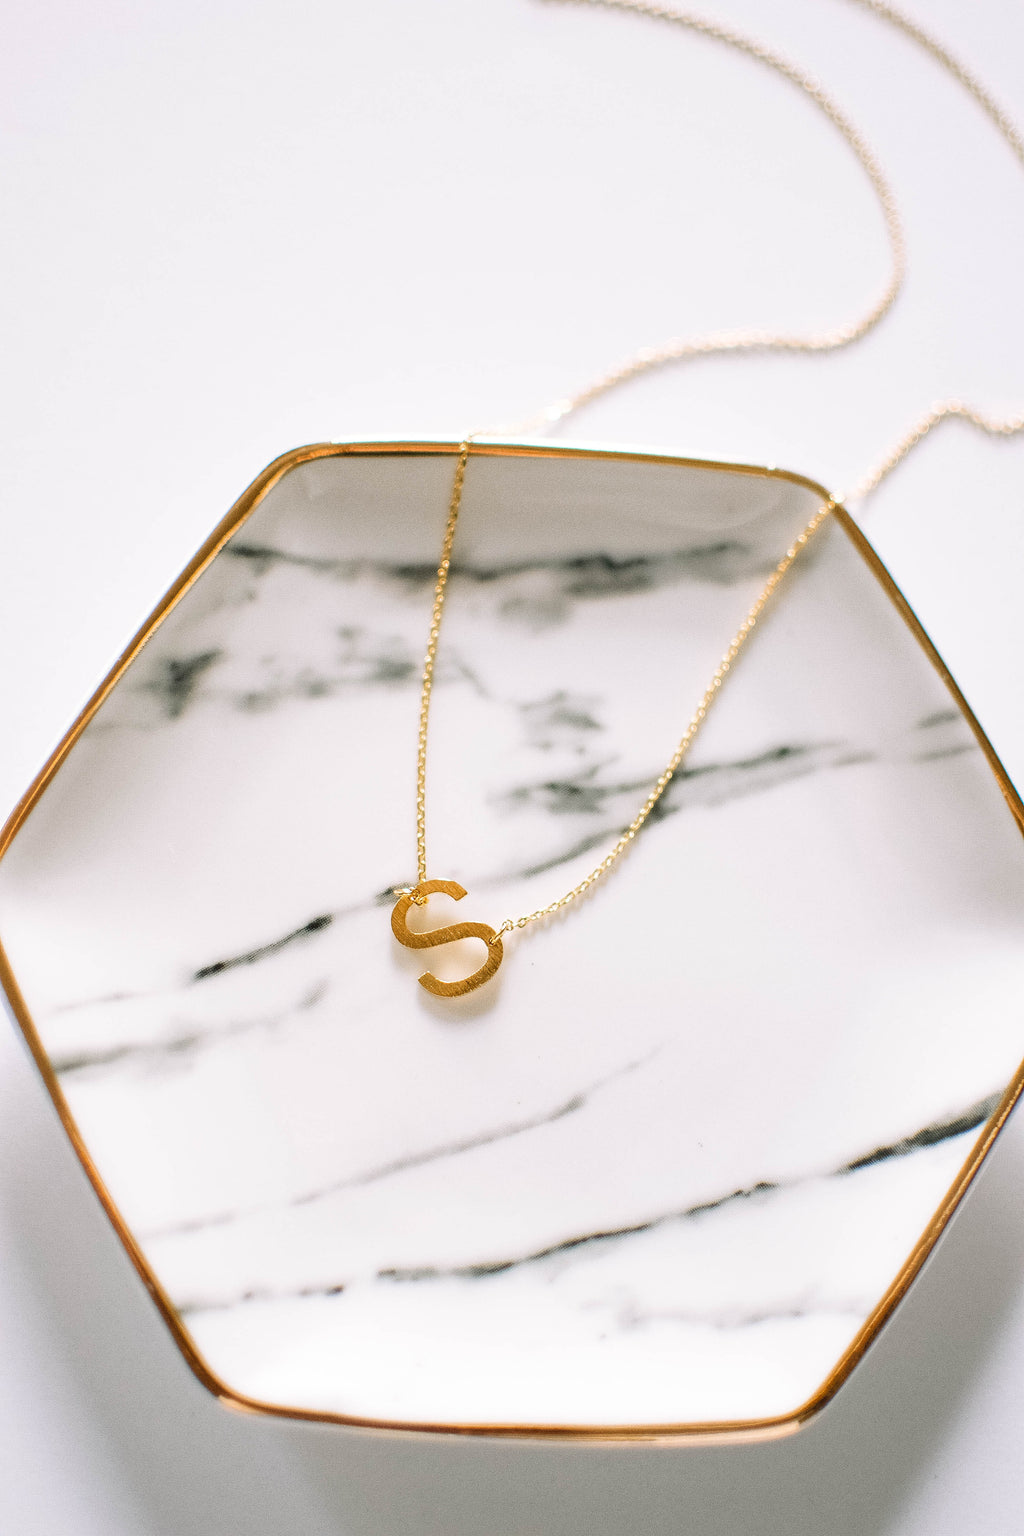 Gold Brushed Letter Necklace - S - Mint Pop Shop